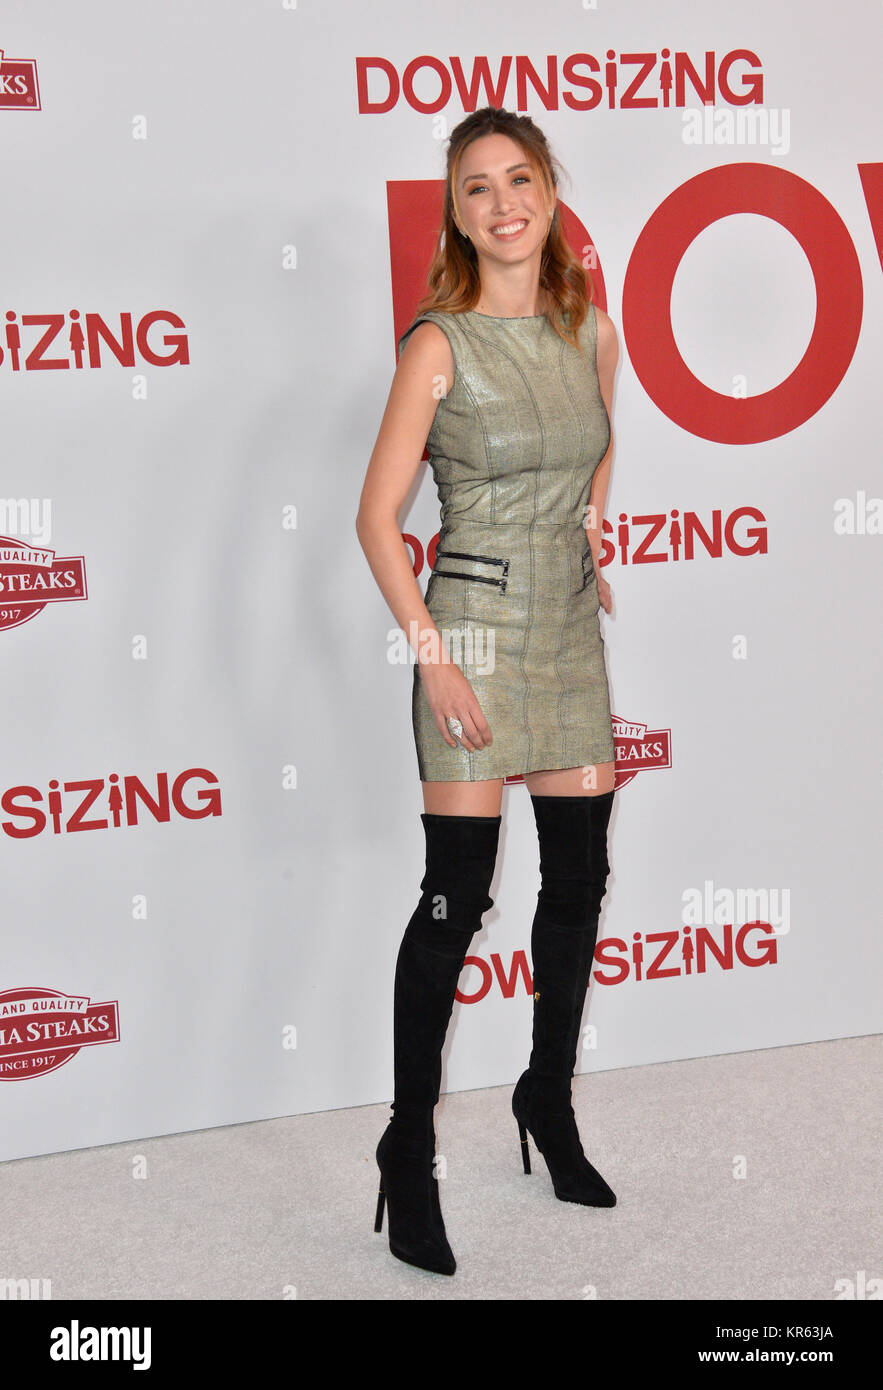 Los Angeles, USA. 18th Dec, 2017. LOS ANGELES, CA. December 18, 2017: Melissa Bolona at the special screening of Stock Photo